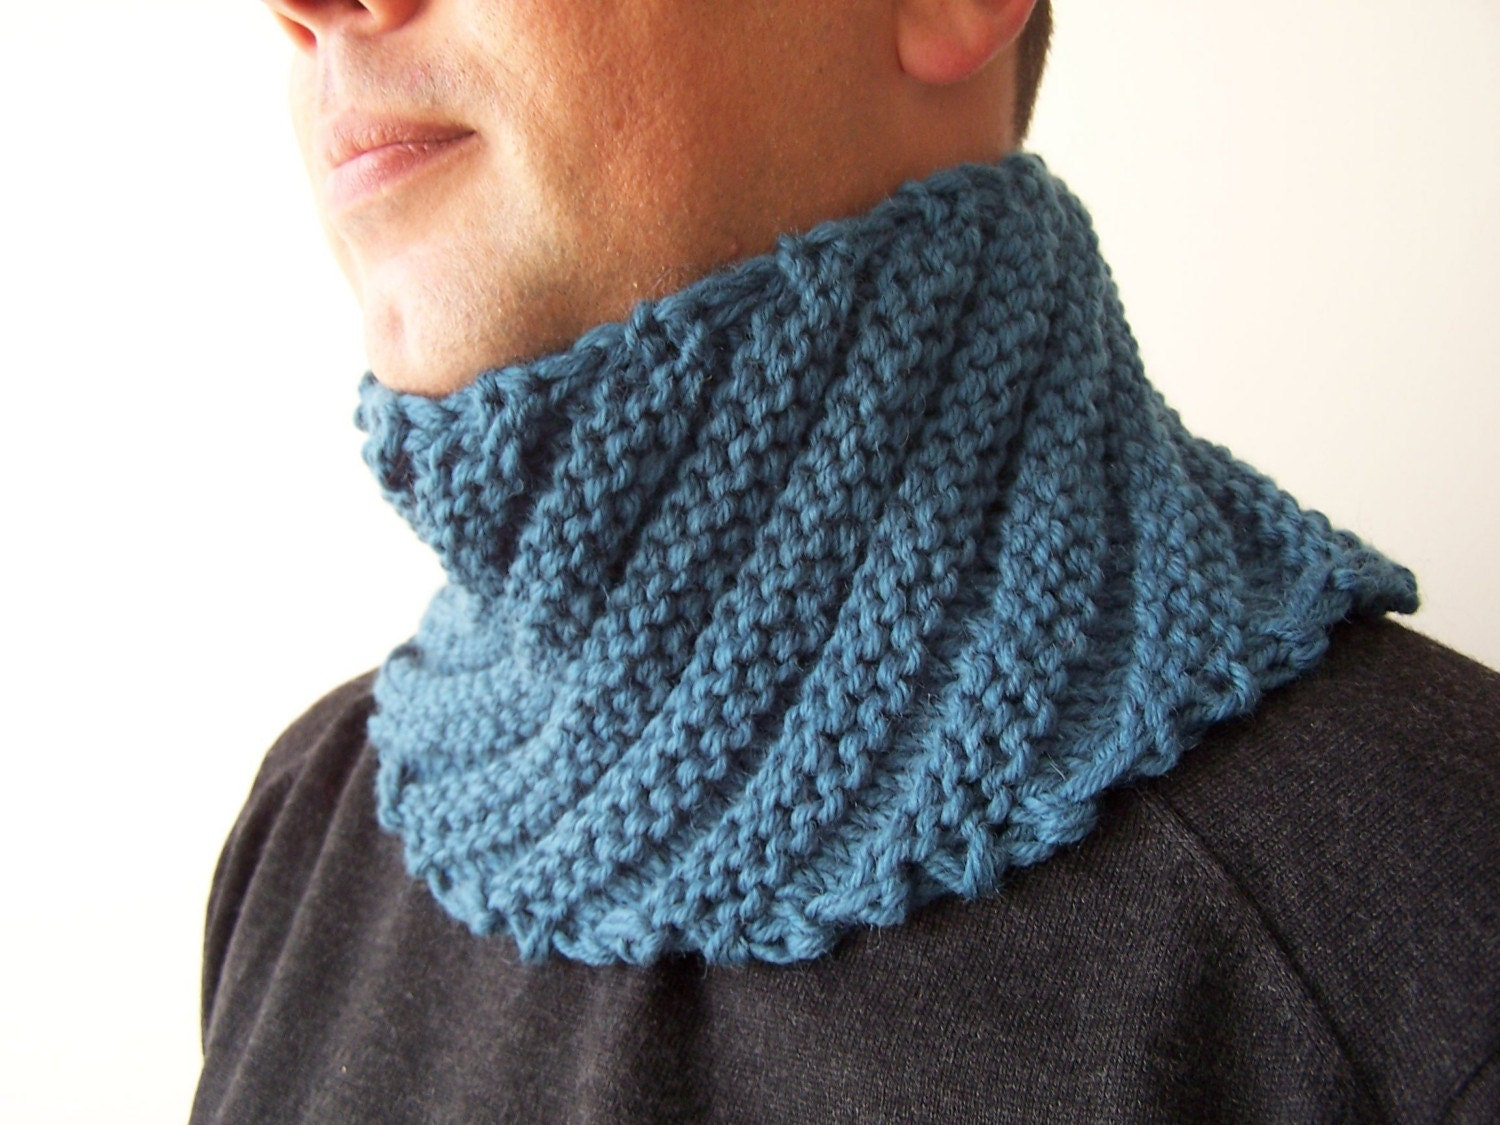 HAND KNIT BLUE Cowl Scarf for Men Fall Scarf Menswear by Ebruk Hand Knitted Scarves For Men